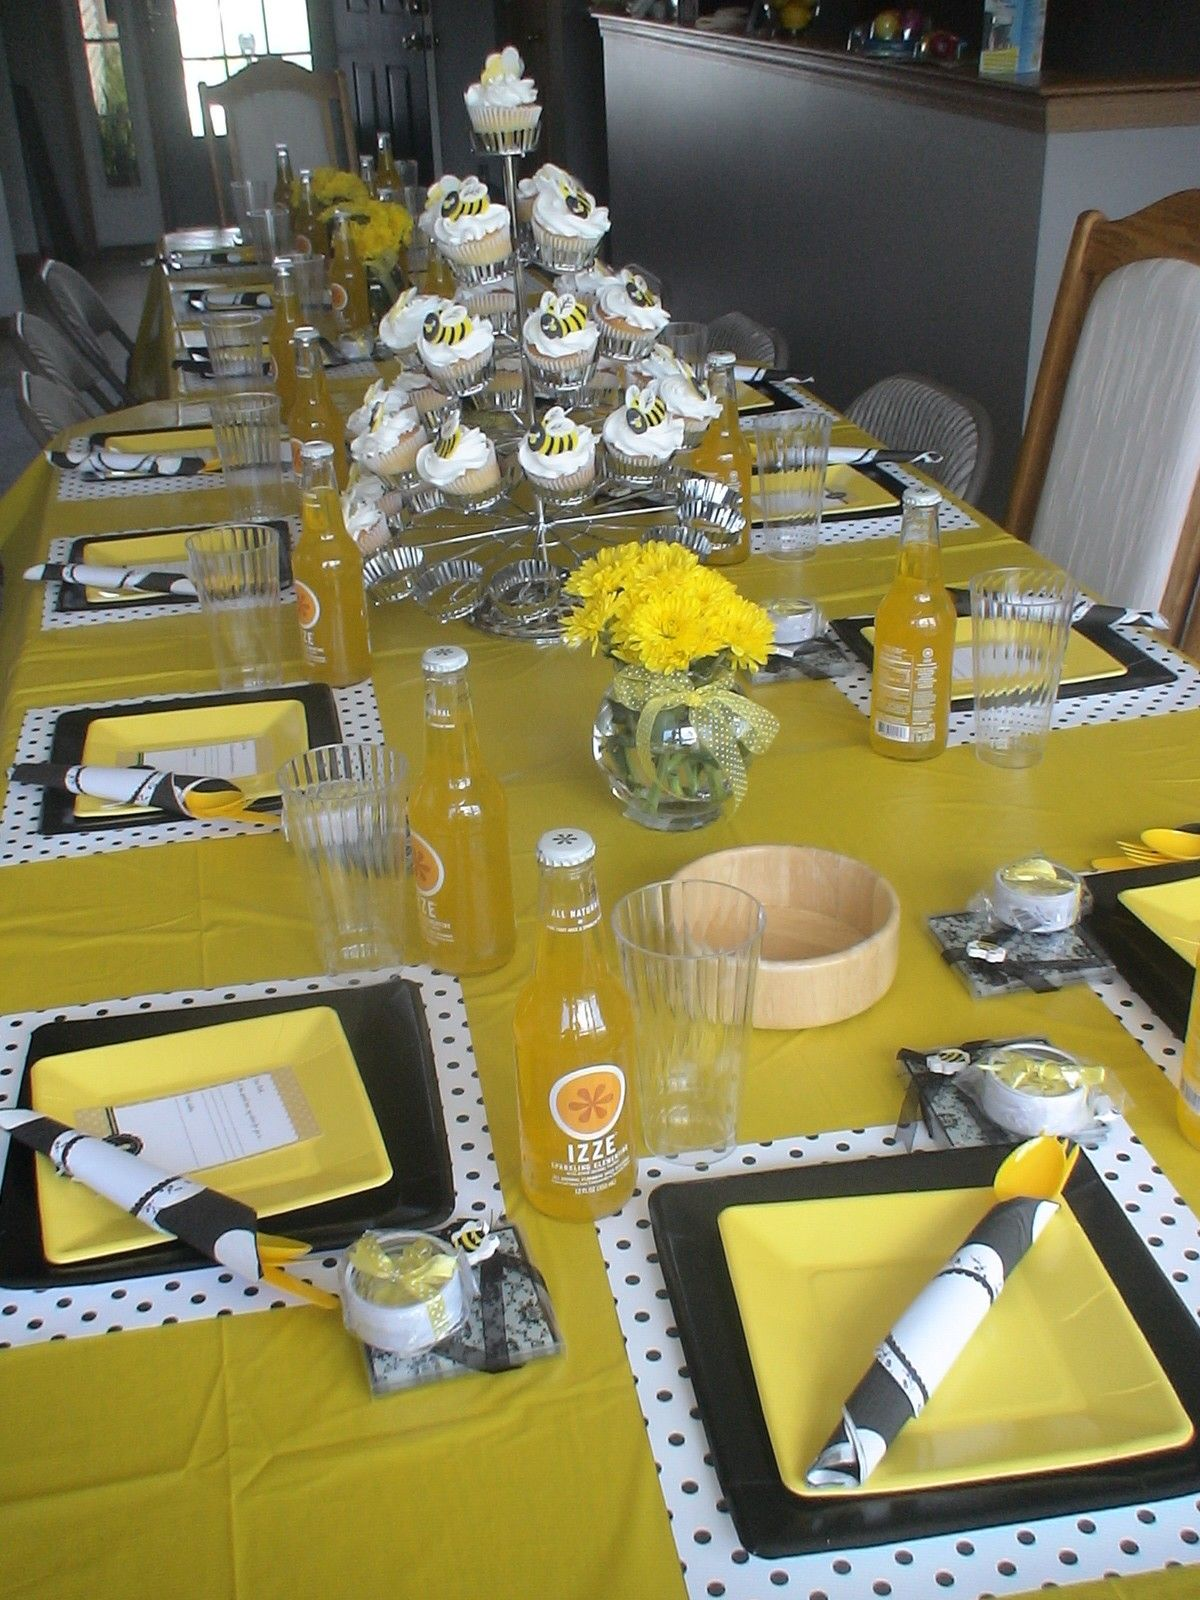 Captivating Clineffu0027s Confections: Bumble Bee Table Scape